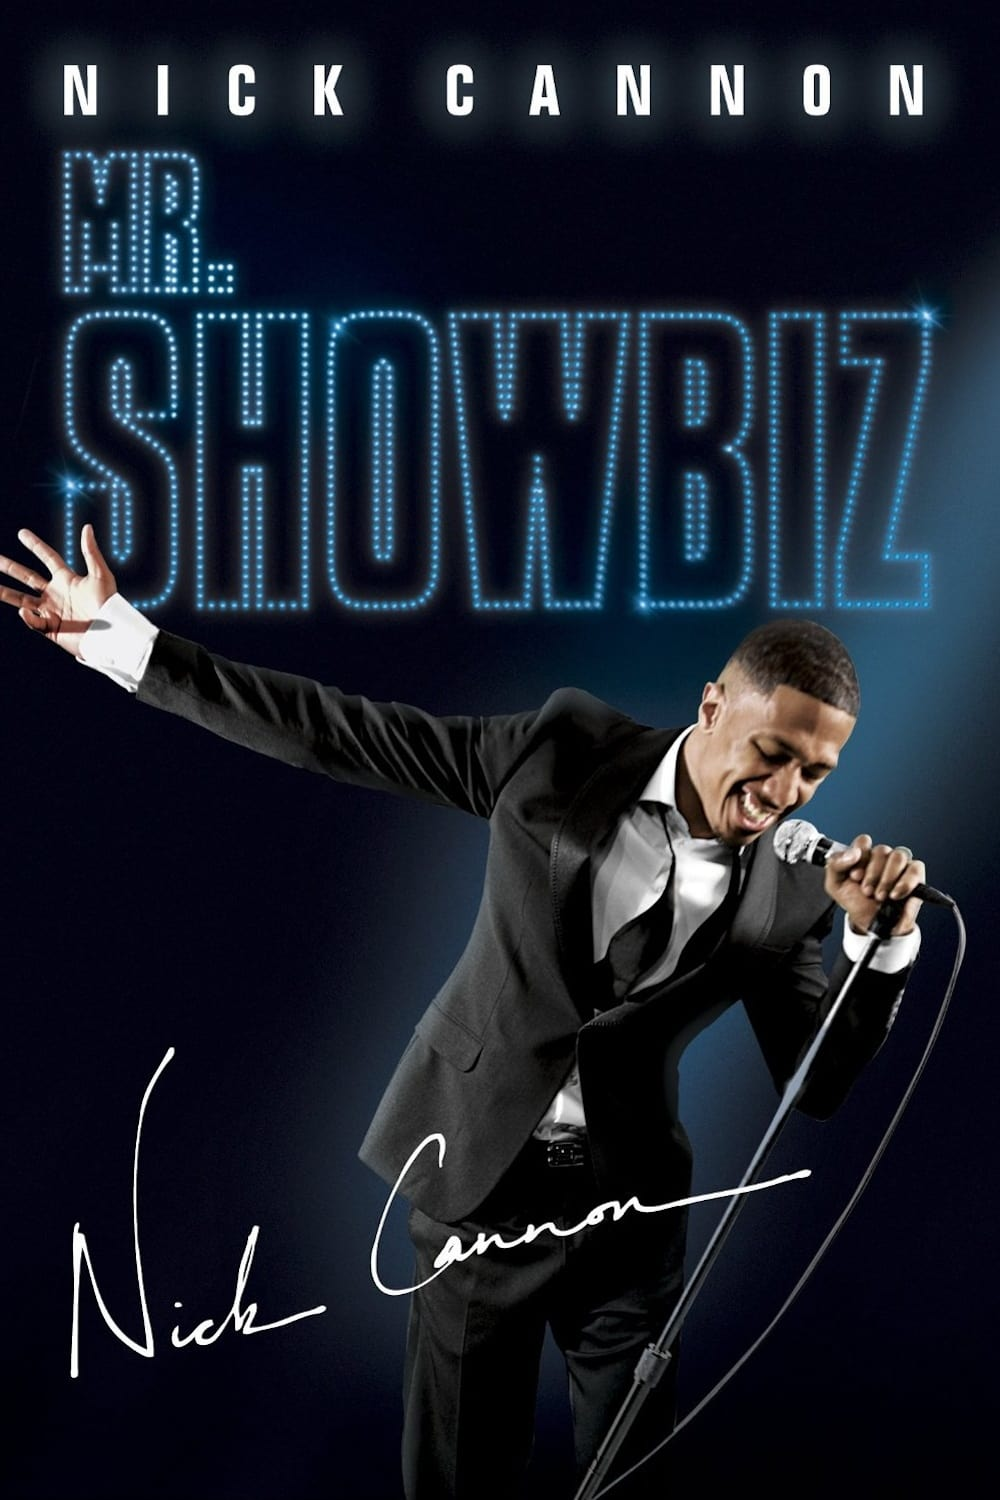 Nick Cannon: Mr. Show Biz on FREECABLE TV